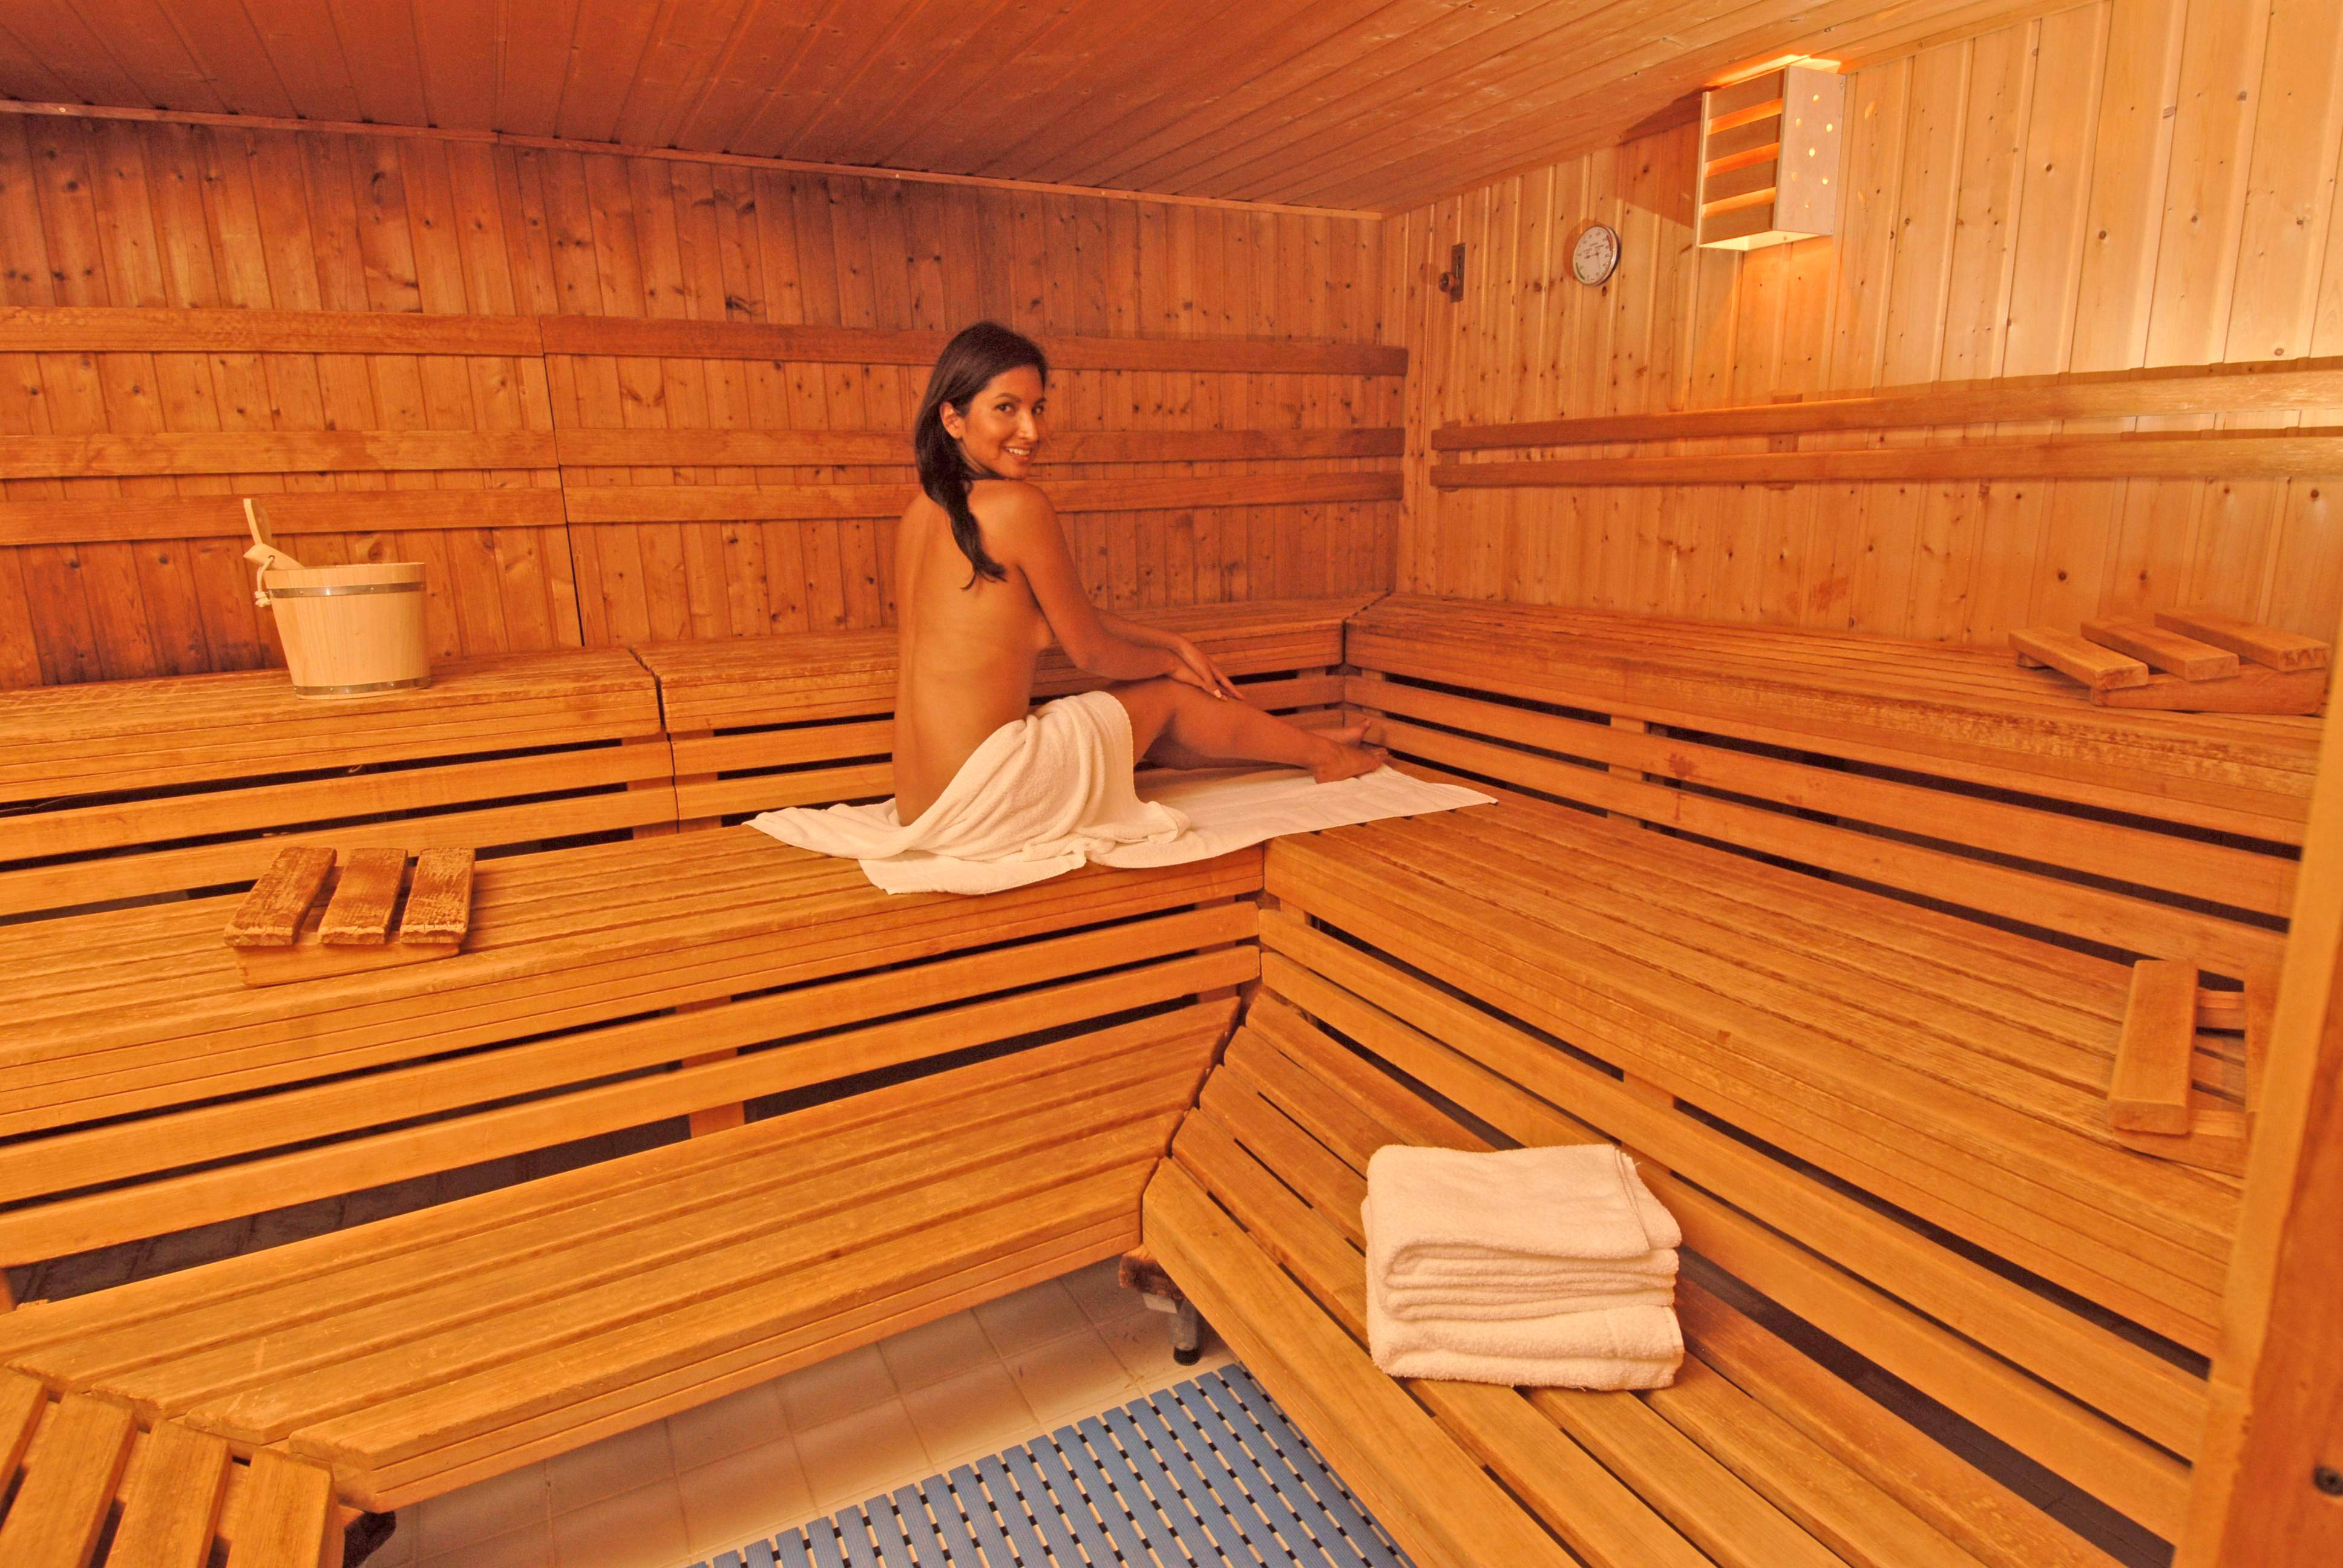 The Top Of Why Sauna Is Good For You